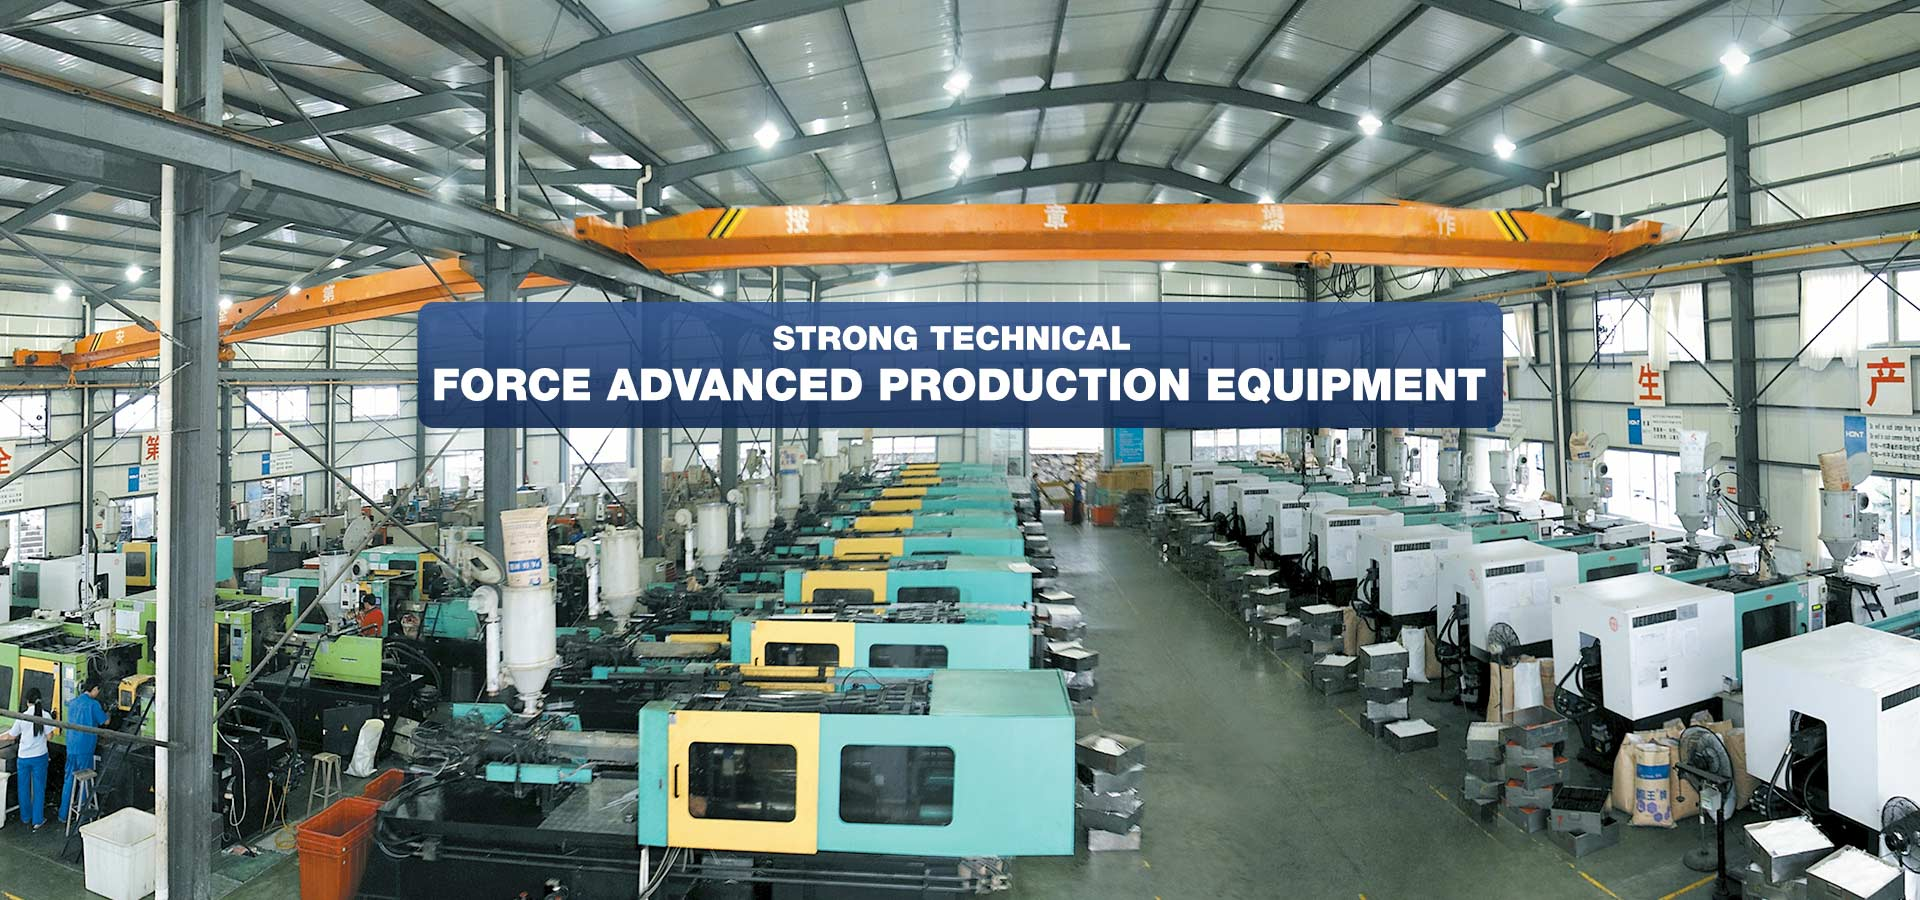 Strong technical force advanced production equipment